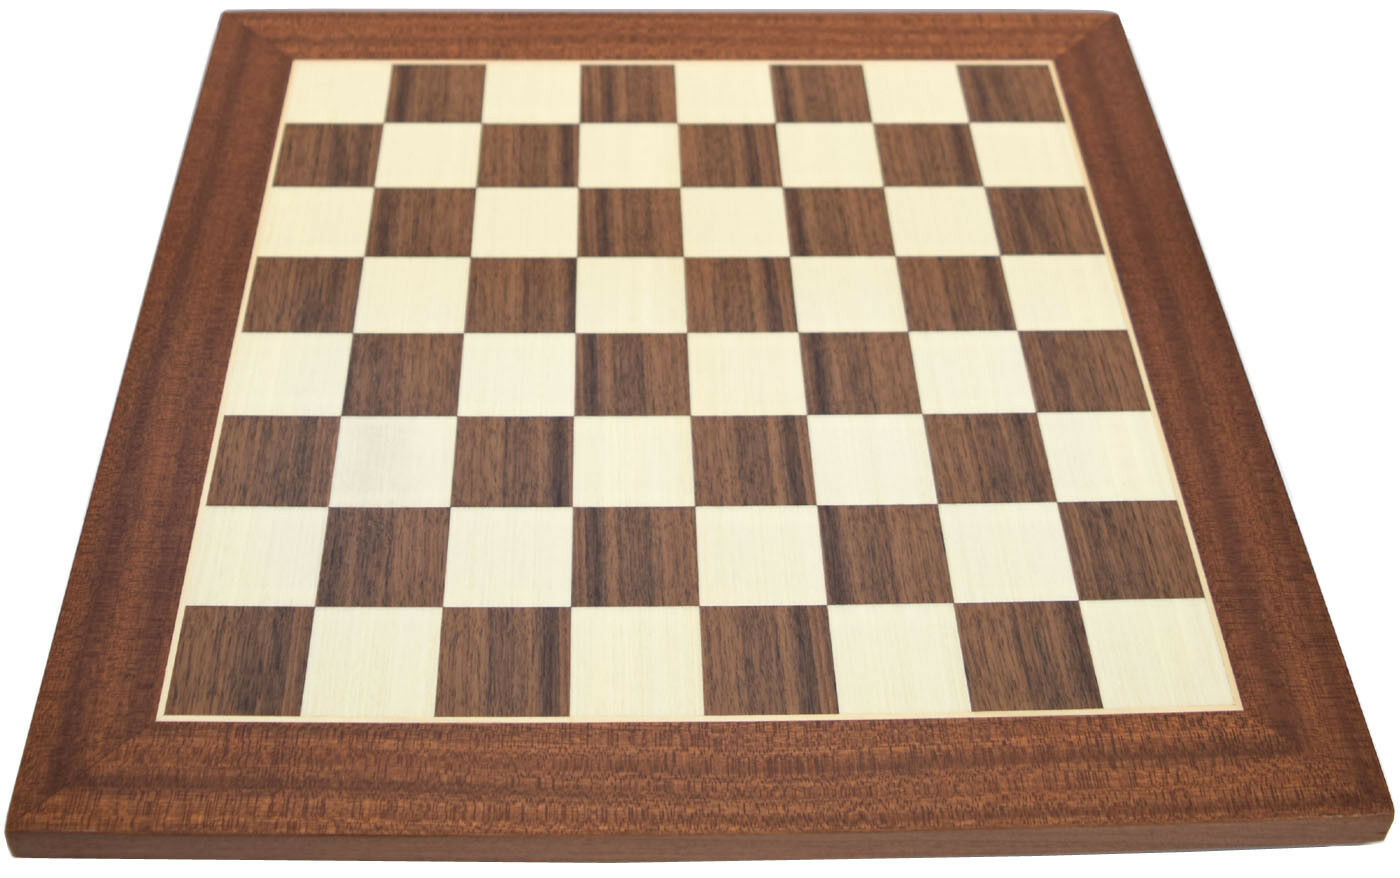 Sale - Walnut, Sycamore and Mahogany Chess Board 1.5 Inch Squares (15040)